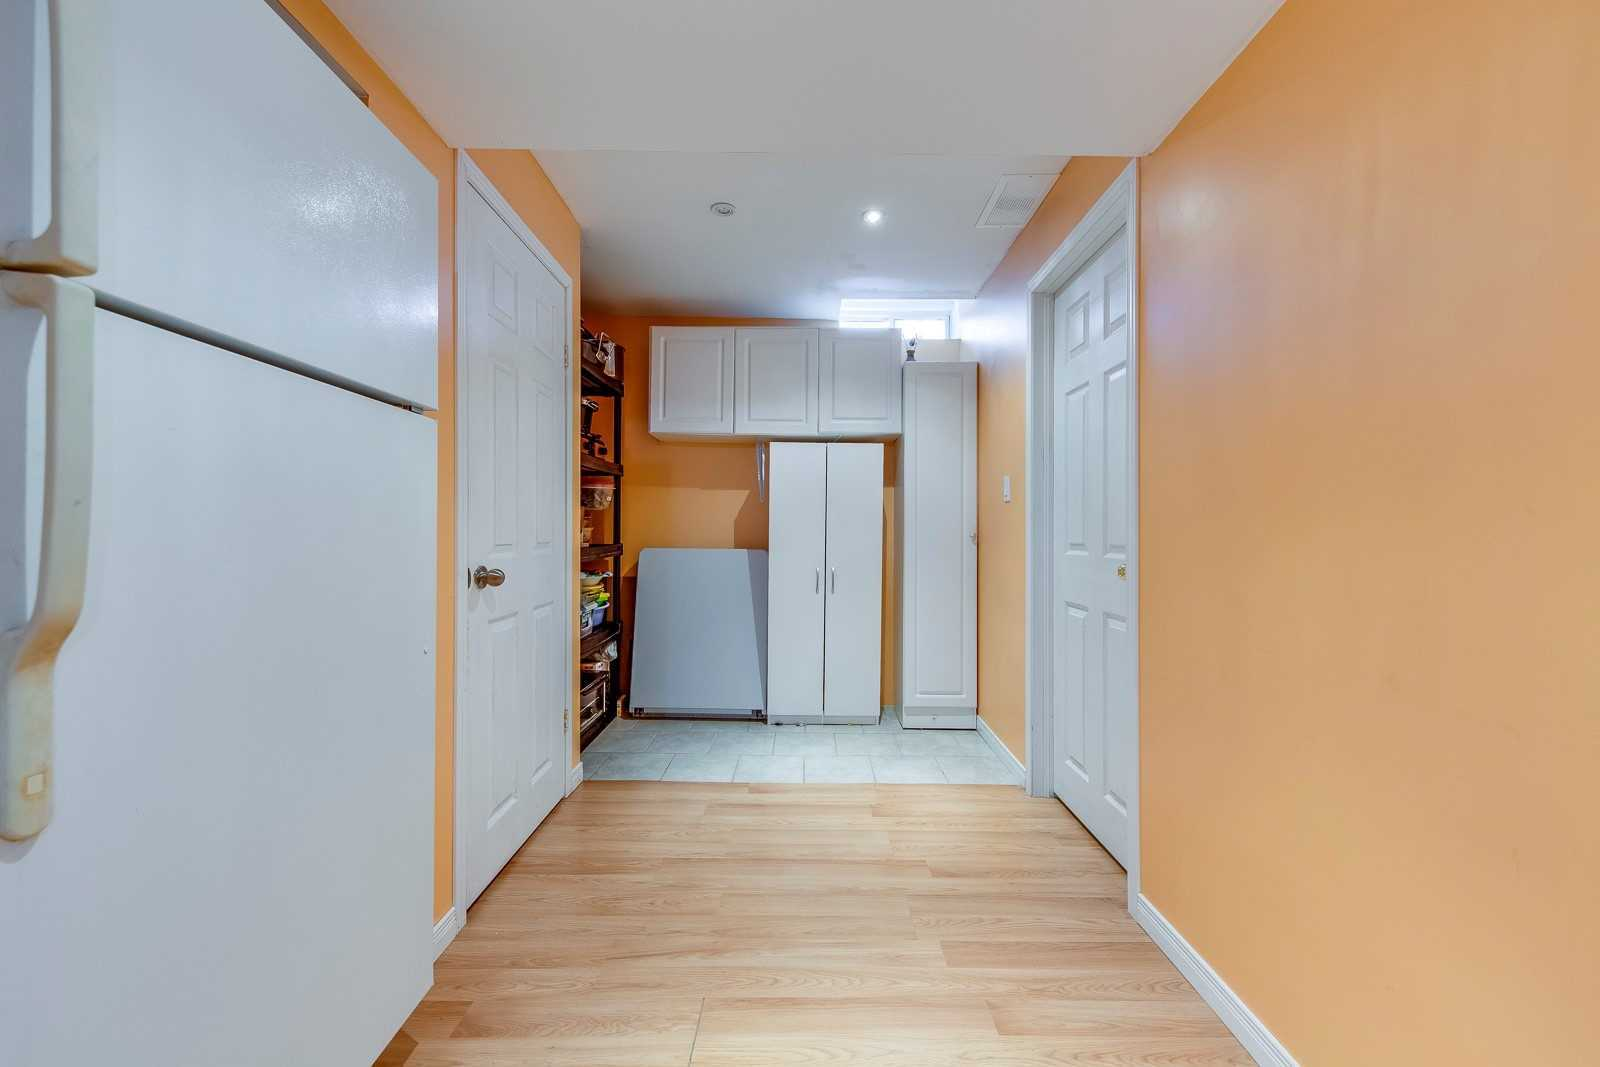 Image 8 of 20 showing inside of 3 Bedroom Att/Row/Twnhouse 2-Storey house for sale at 682 Edwards Ave, Milton L9T6B3